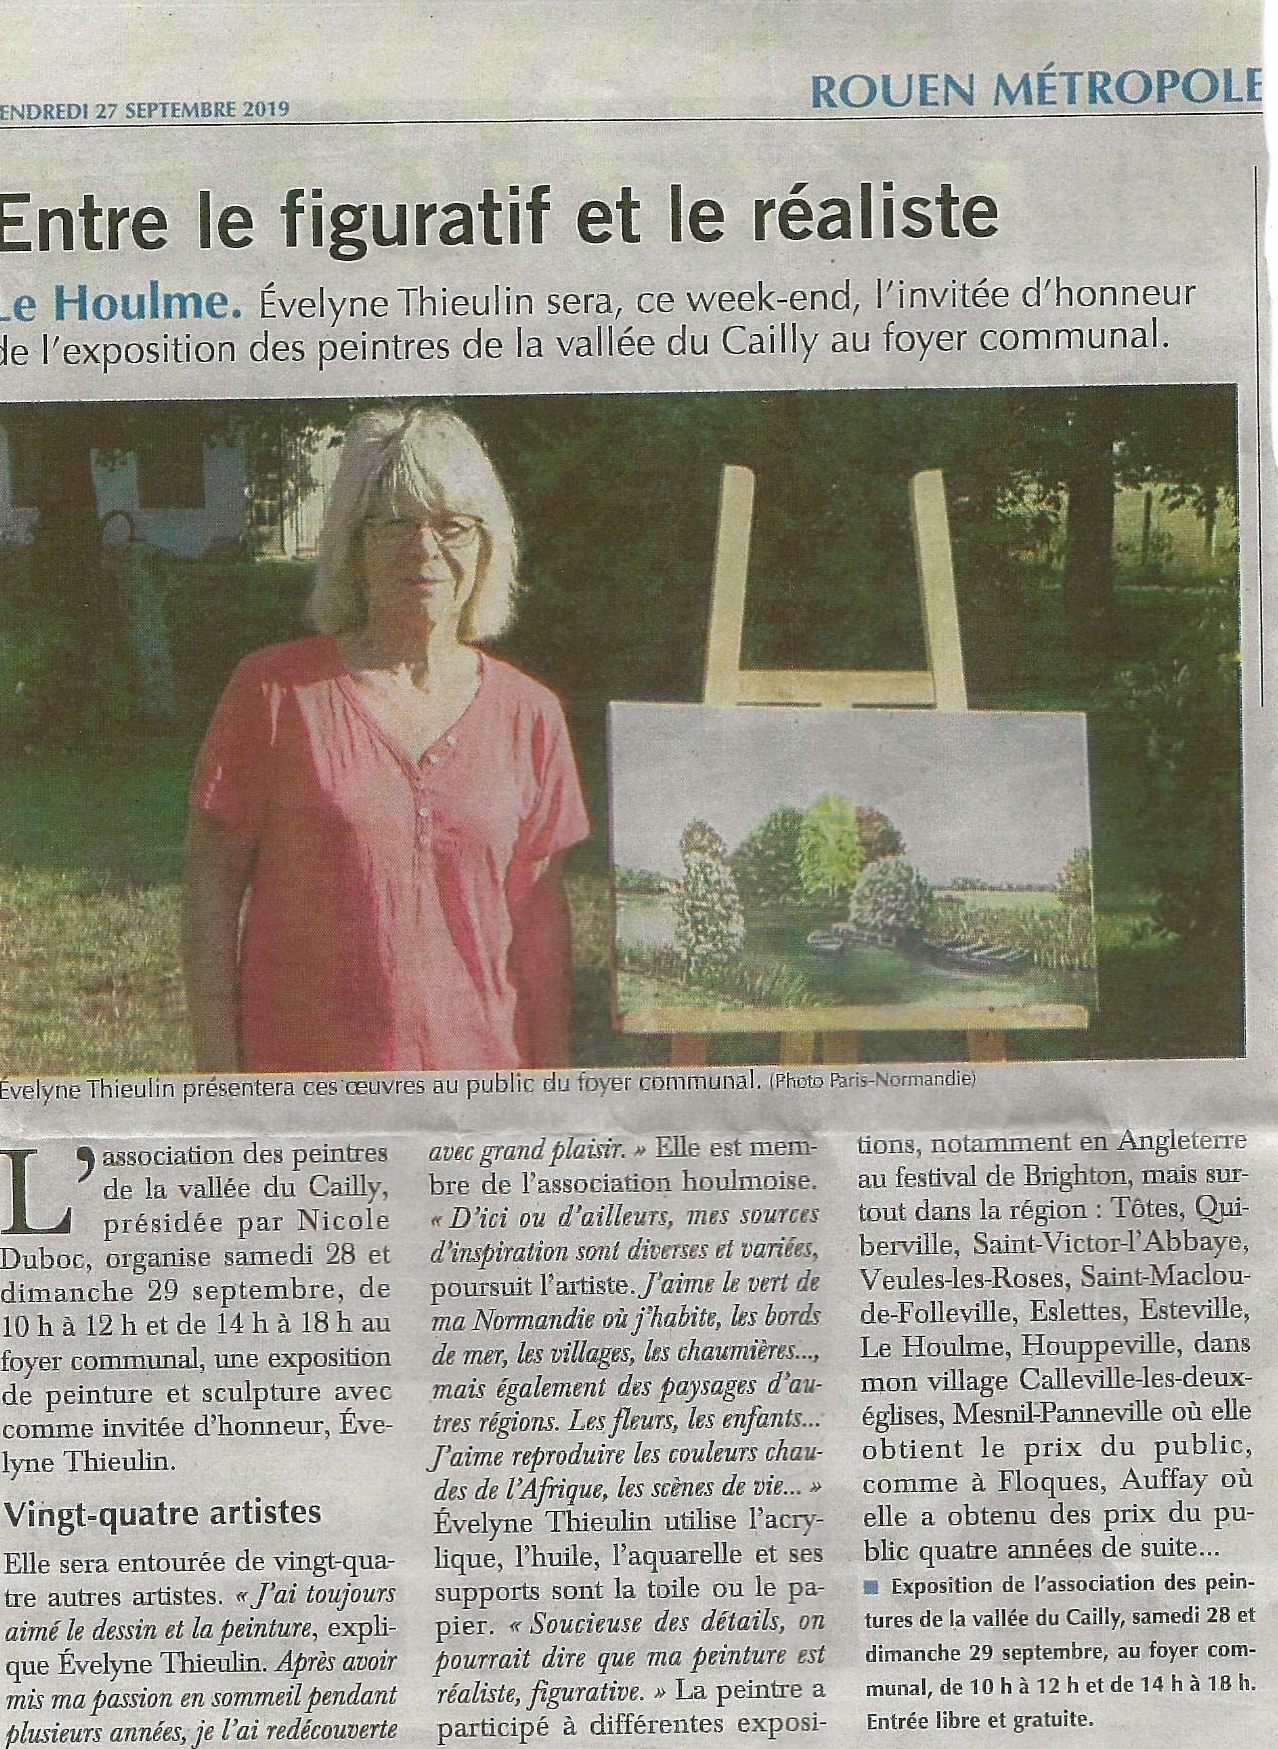 Le Houlme 2019 : article Paris Normandie